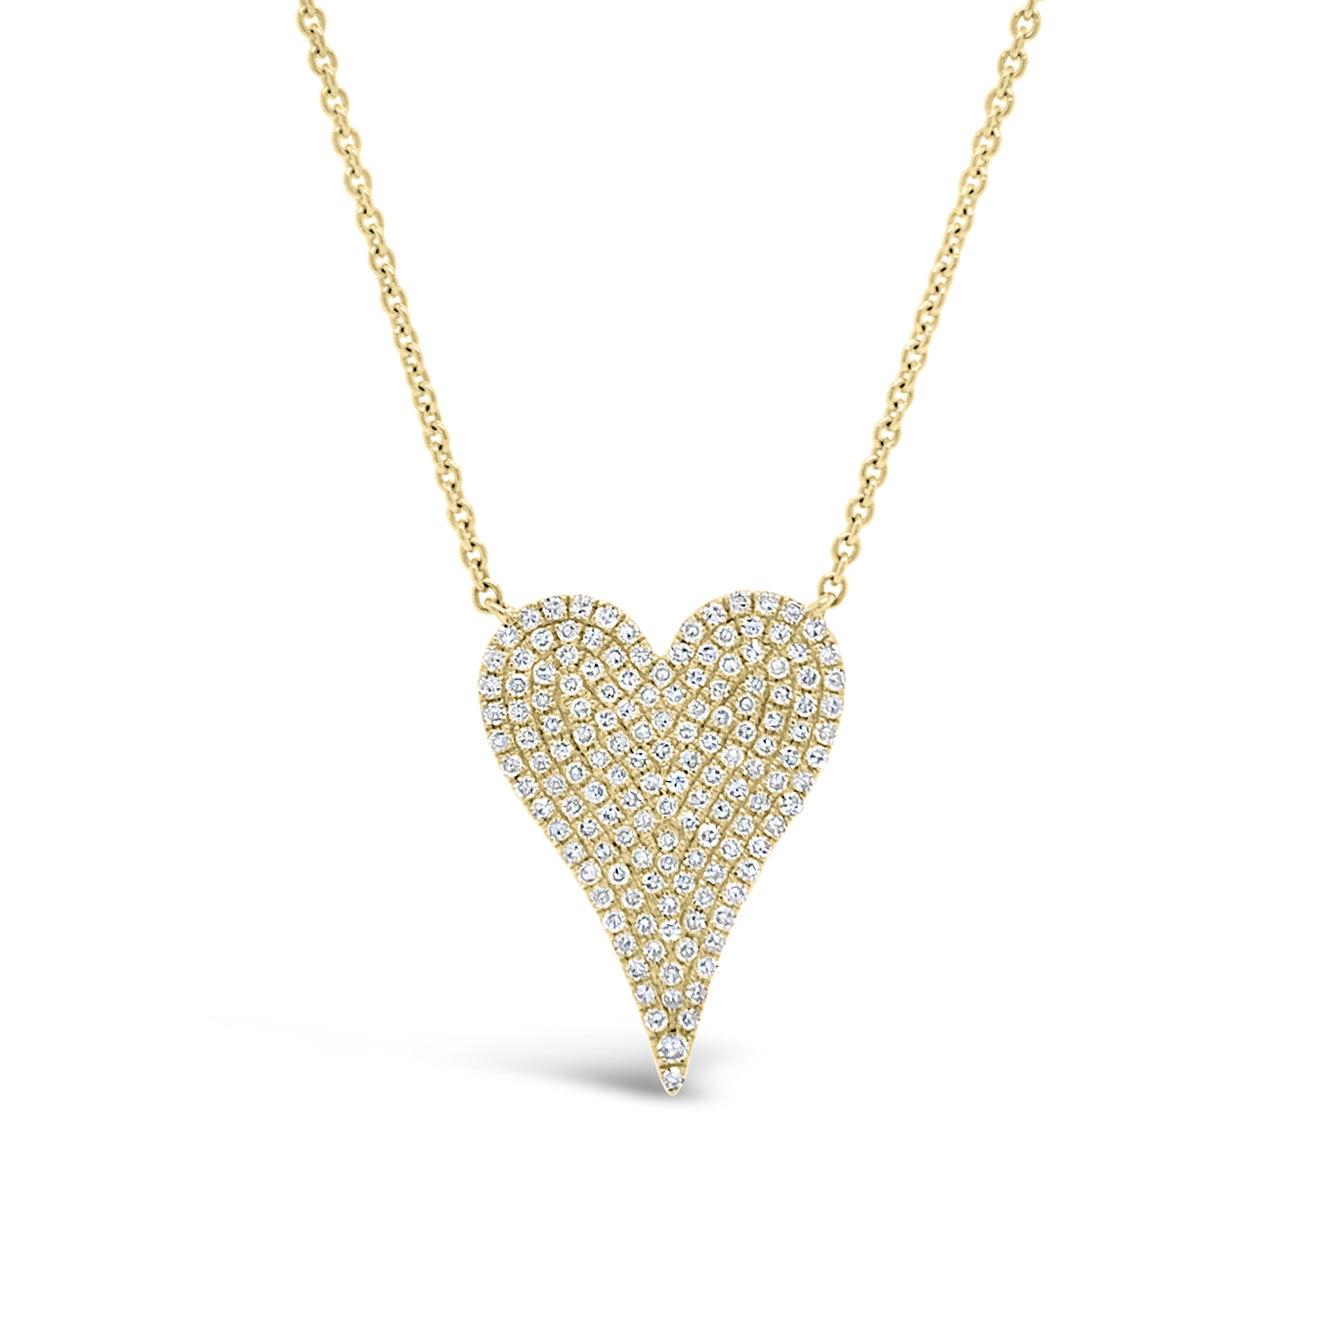 Diamond Medium Elongated Heart Pendant Necklace